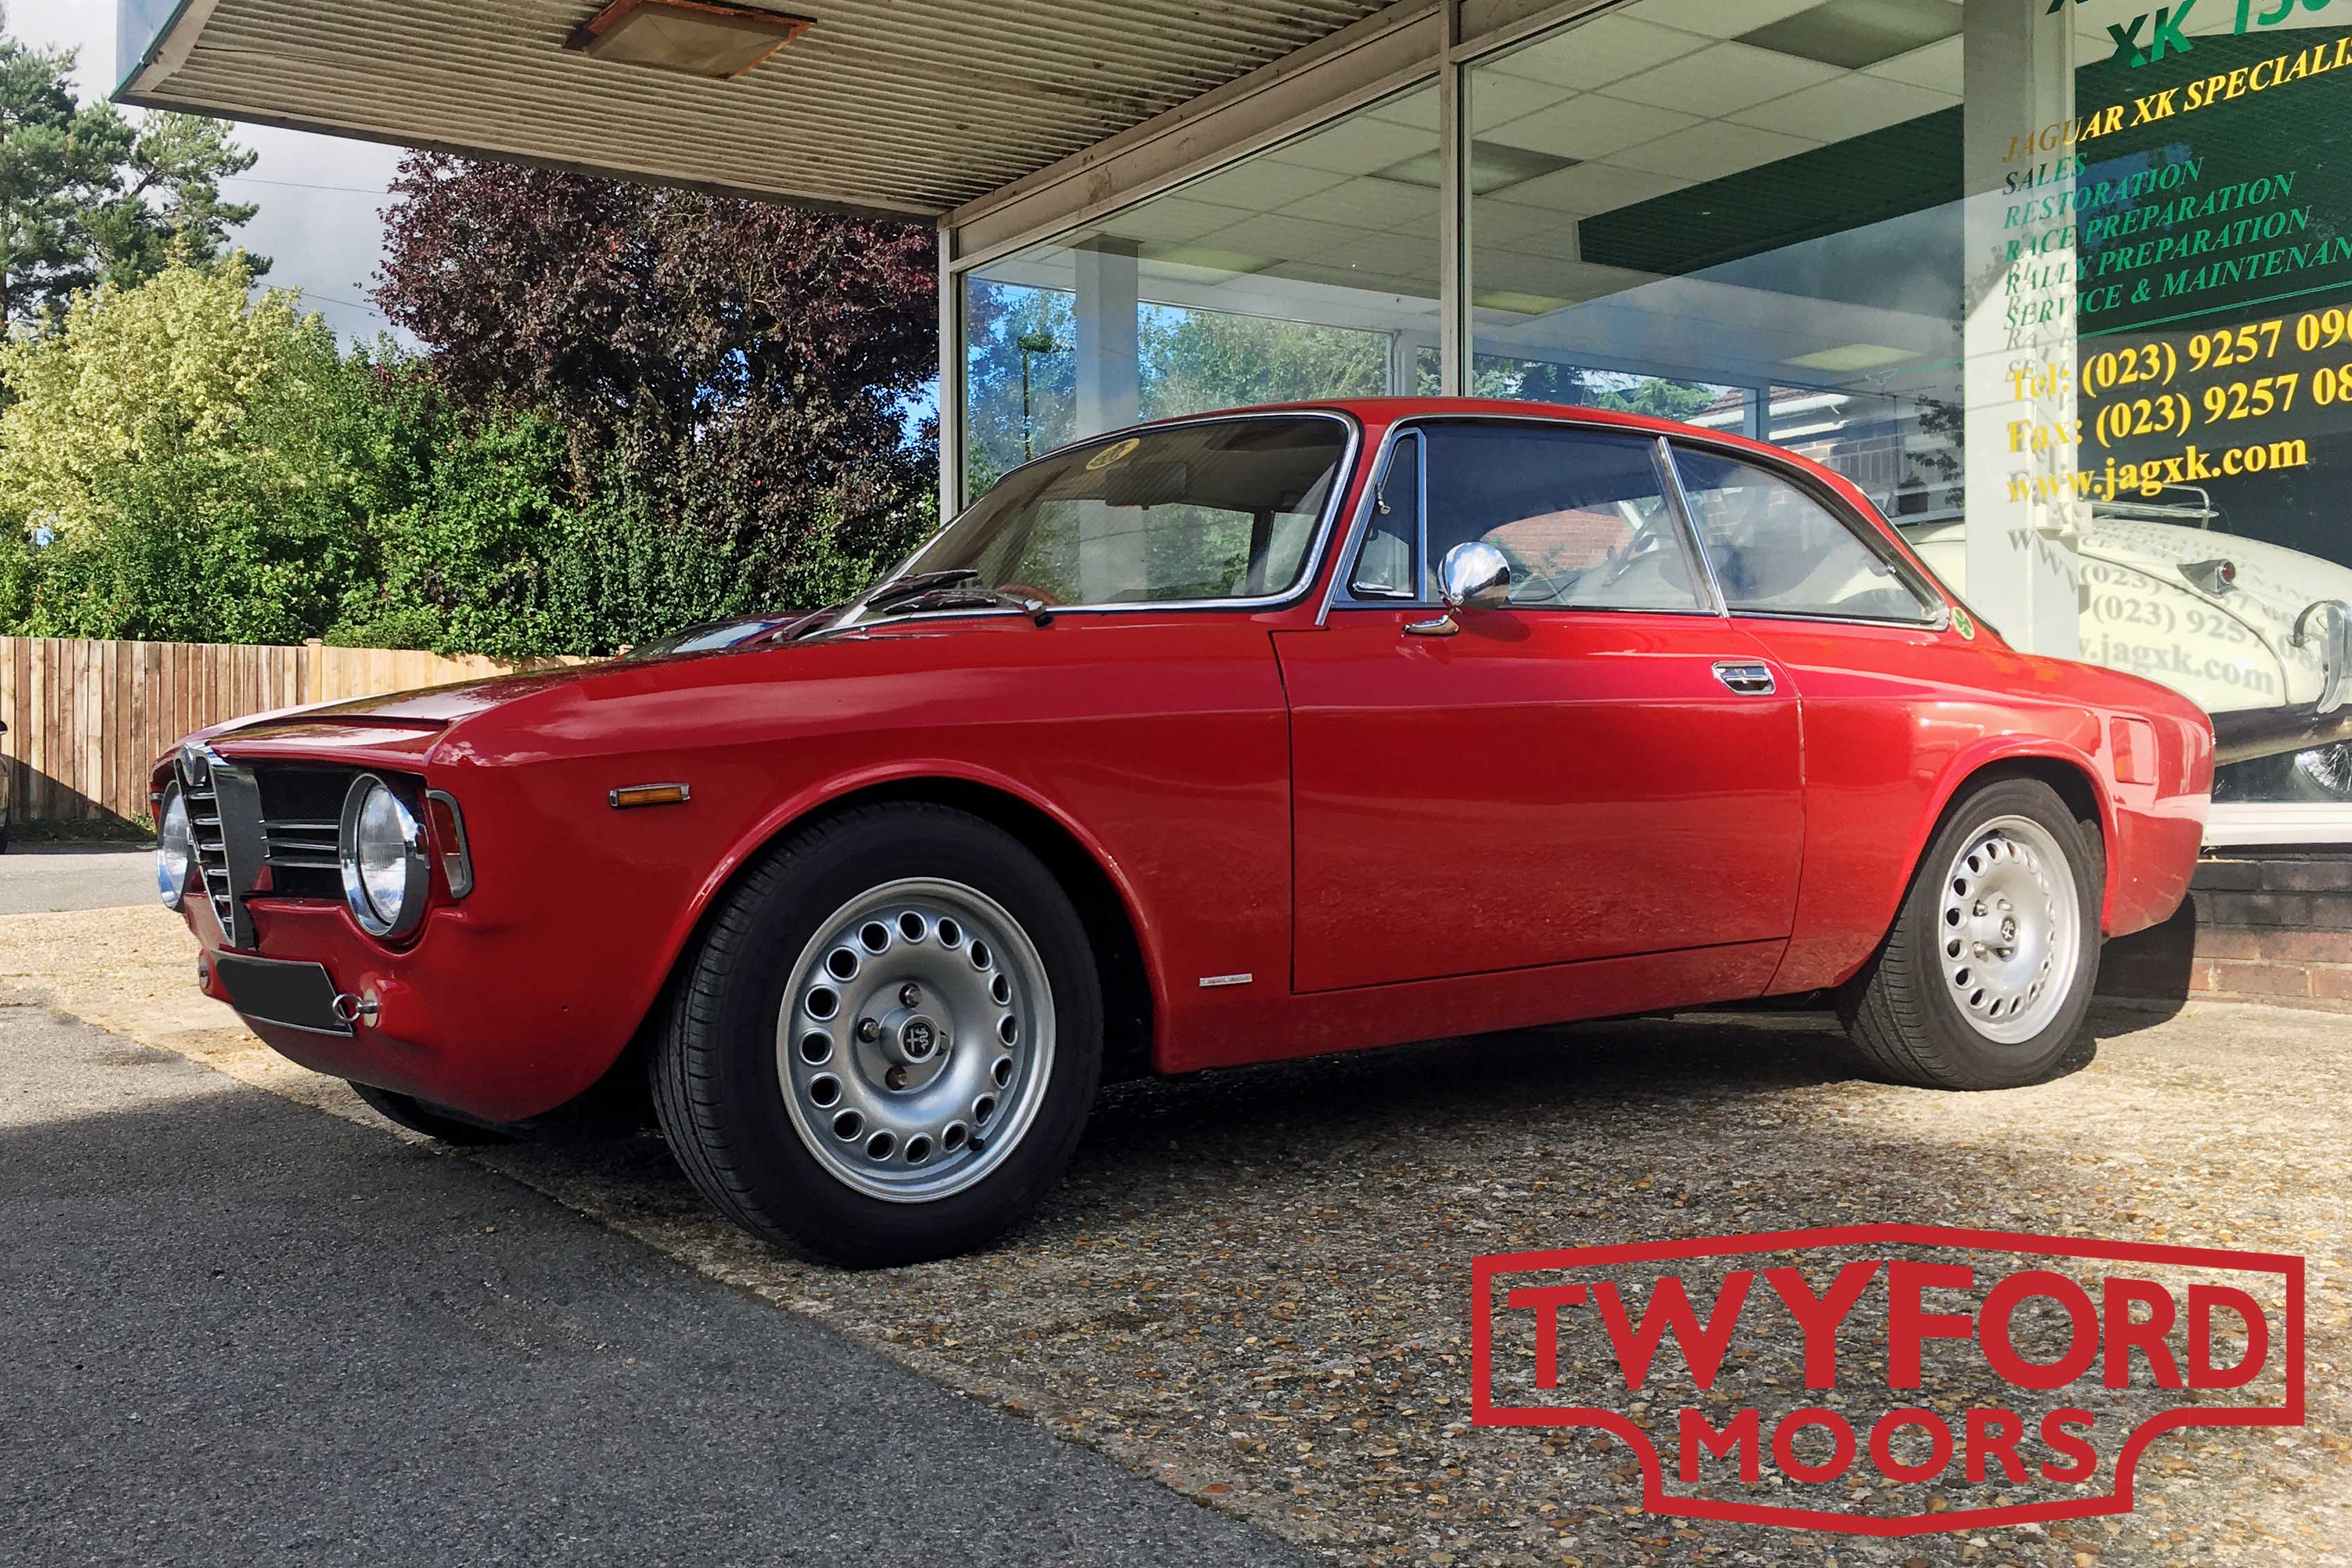 Alfa Romeo classic car Hampshire